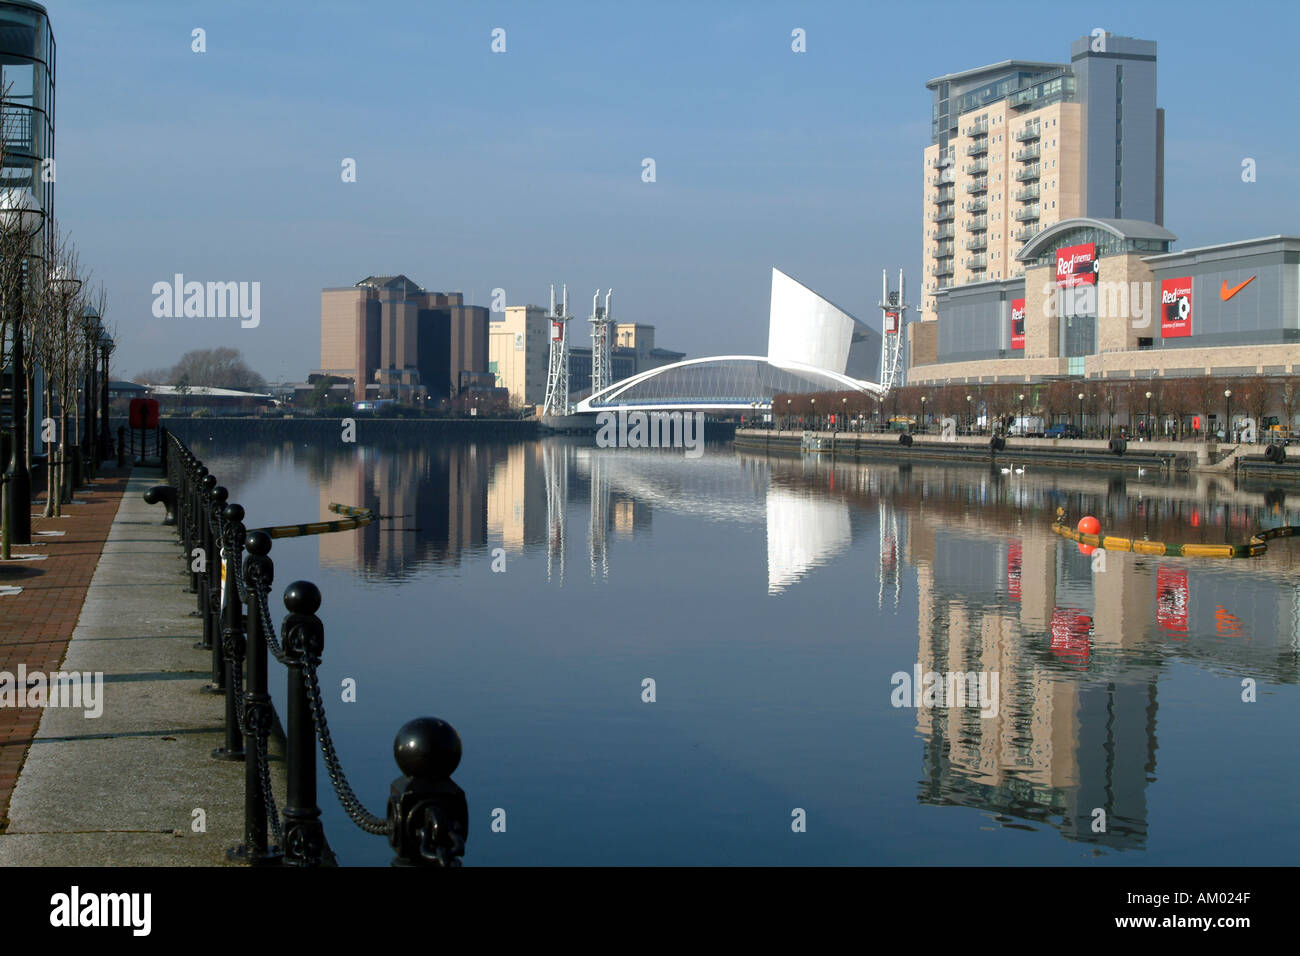 Inner City Development at Salford Quays Greater Manchester Northern England UK - Stock Image